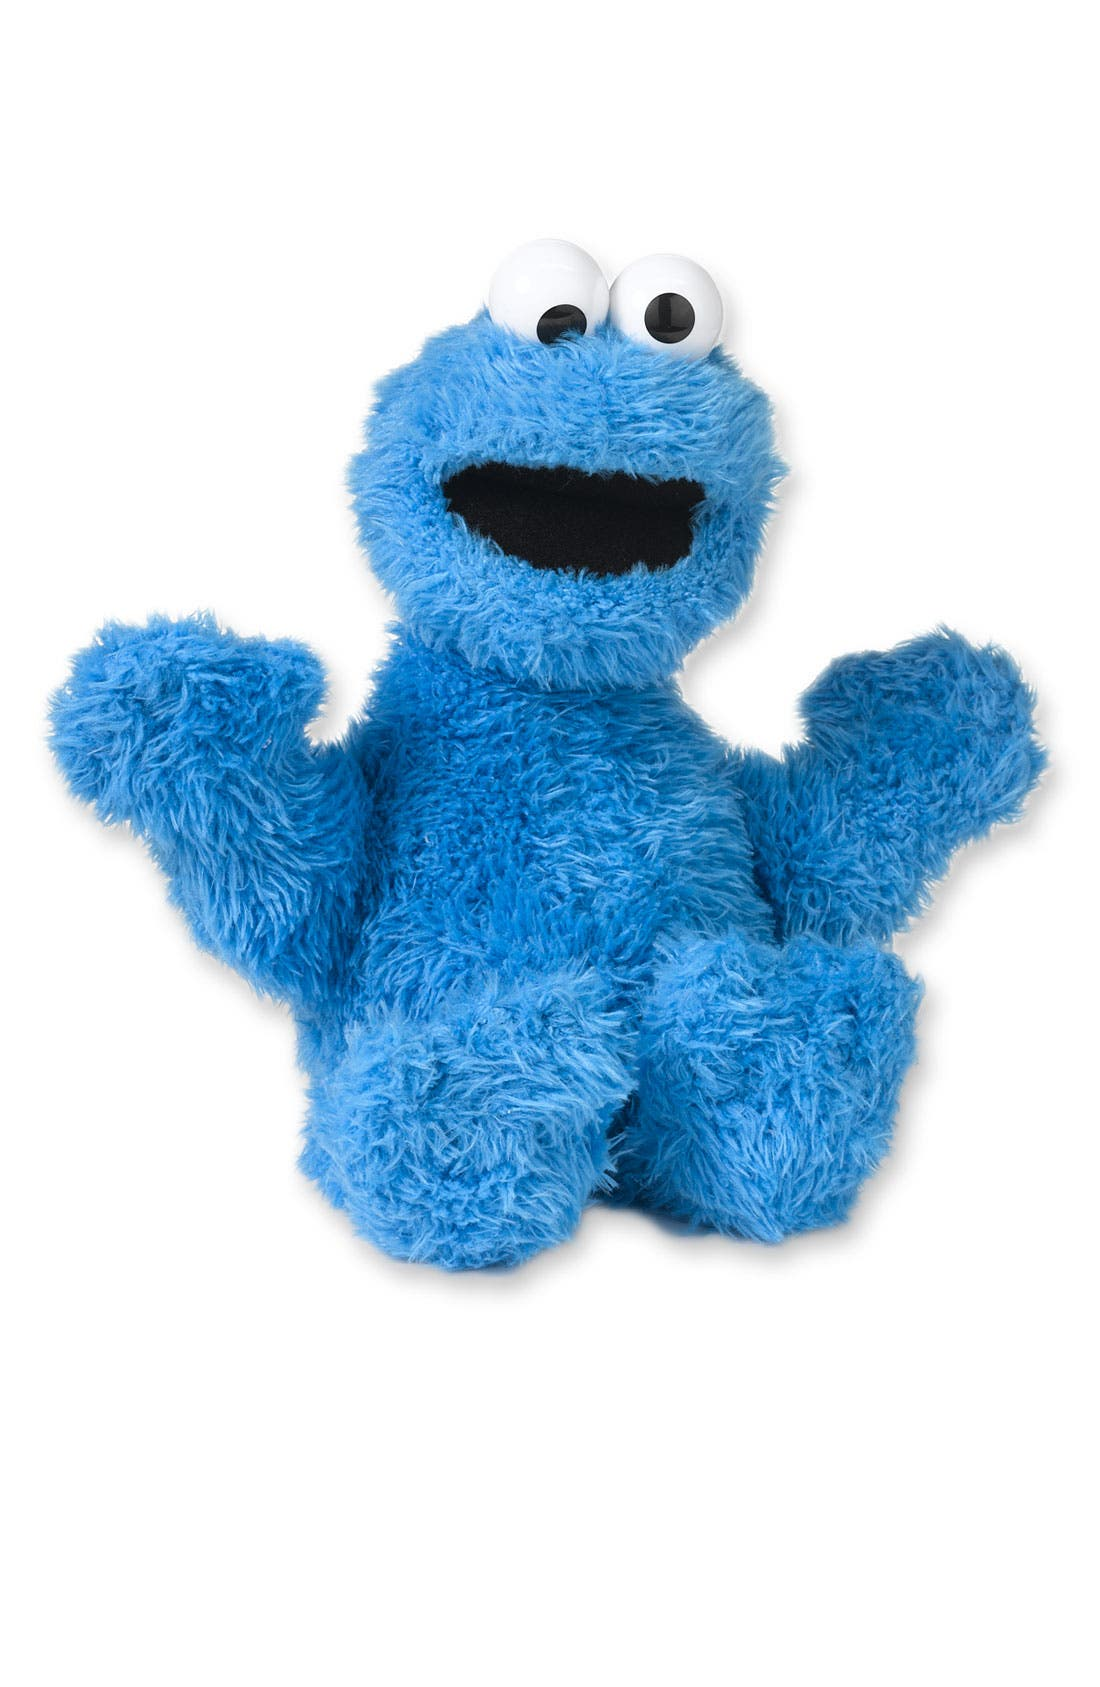 Main Image - Gund Sesame Street® Stuffed Animal